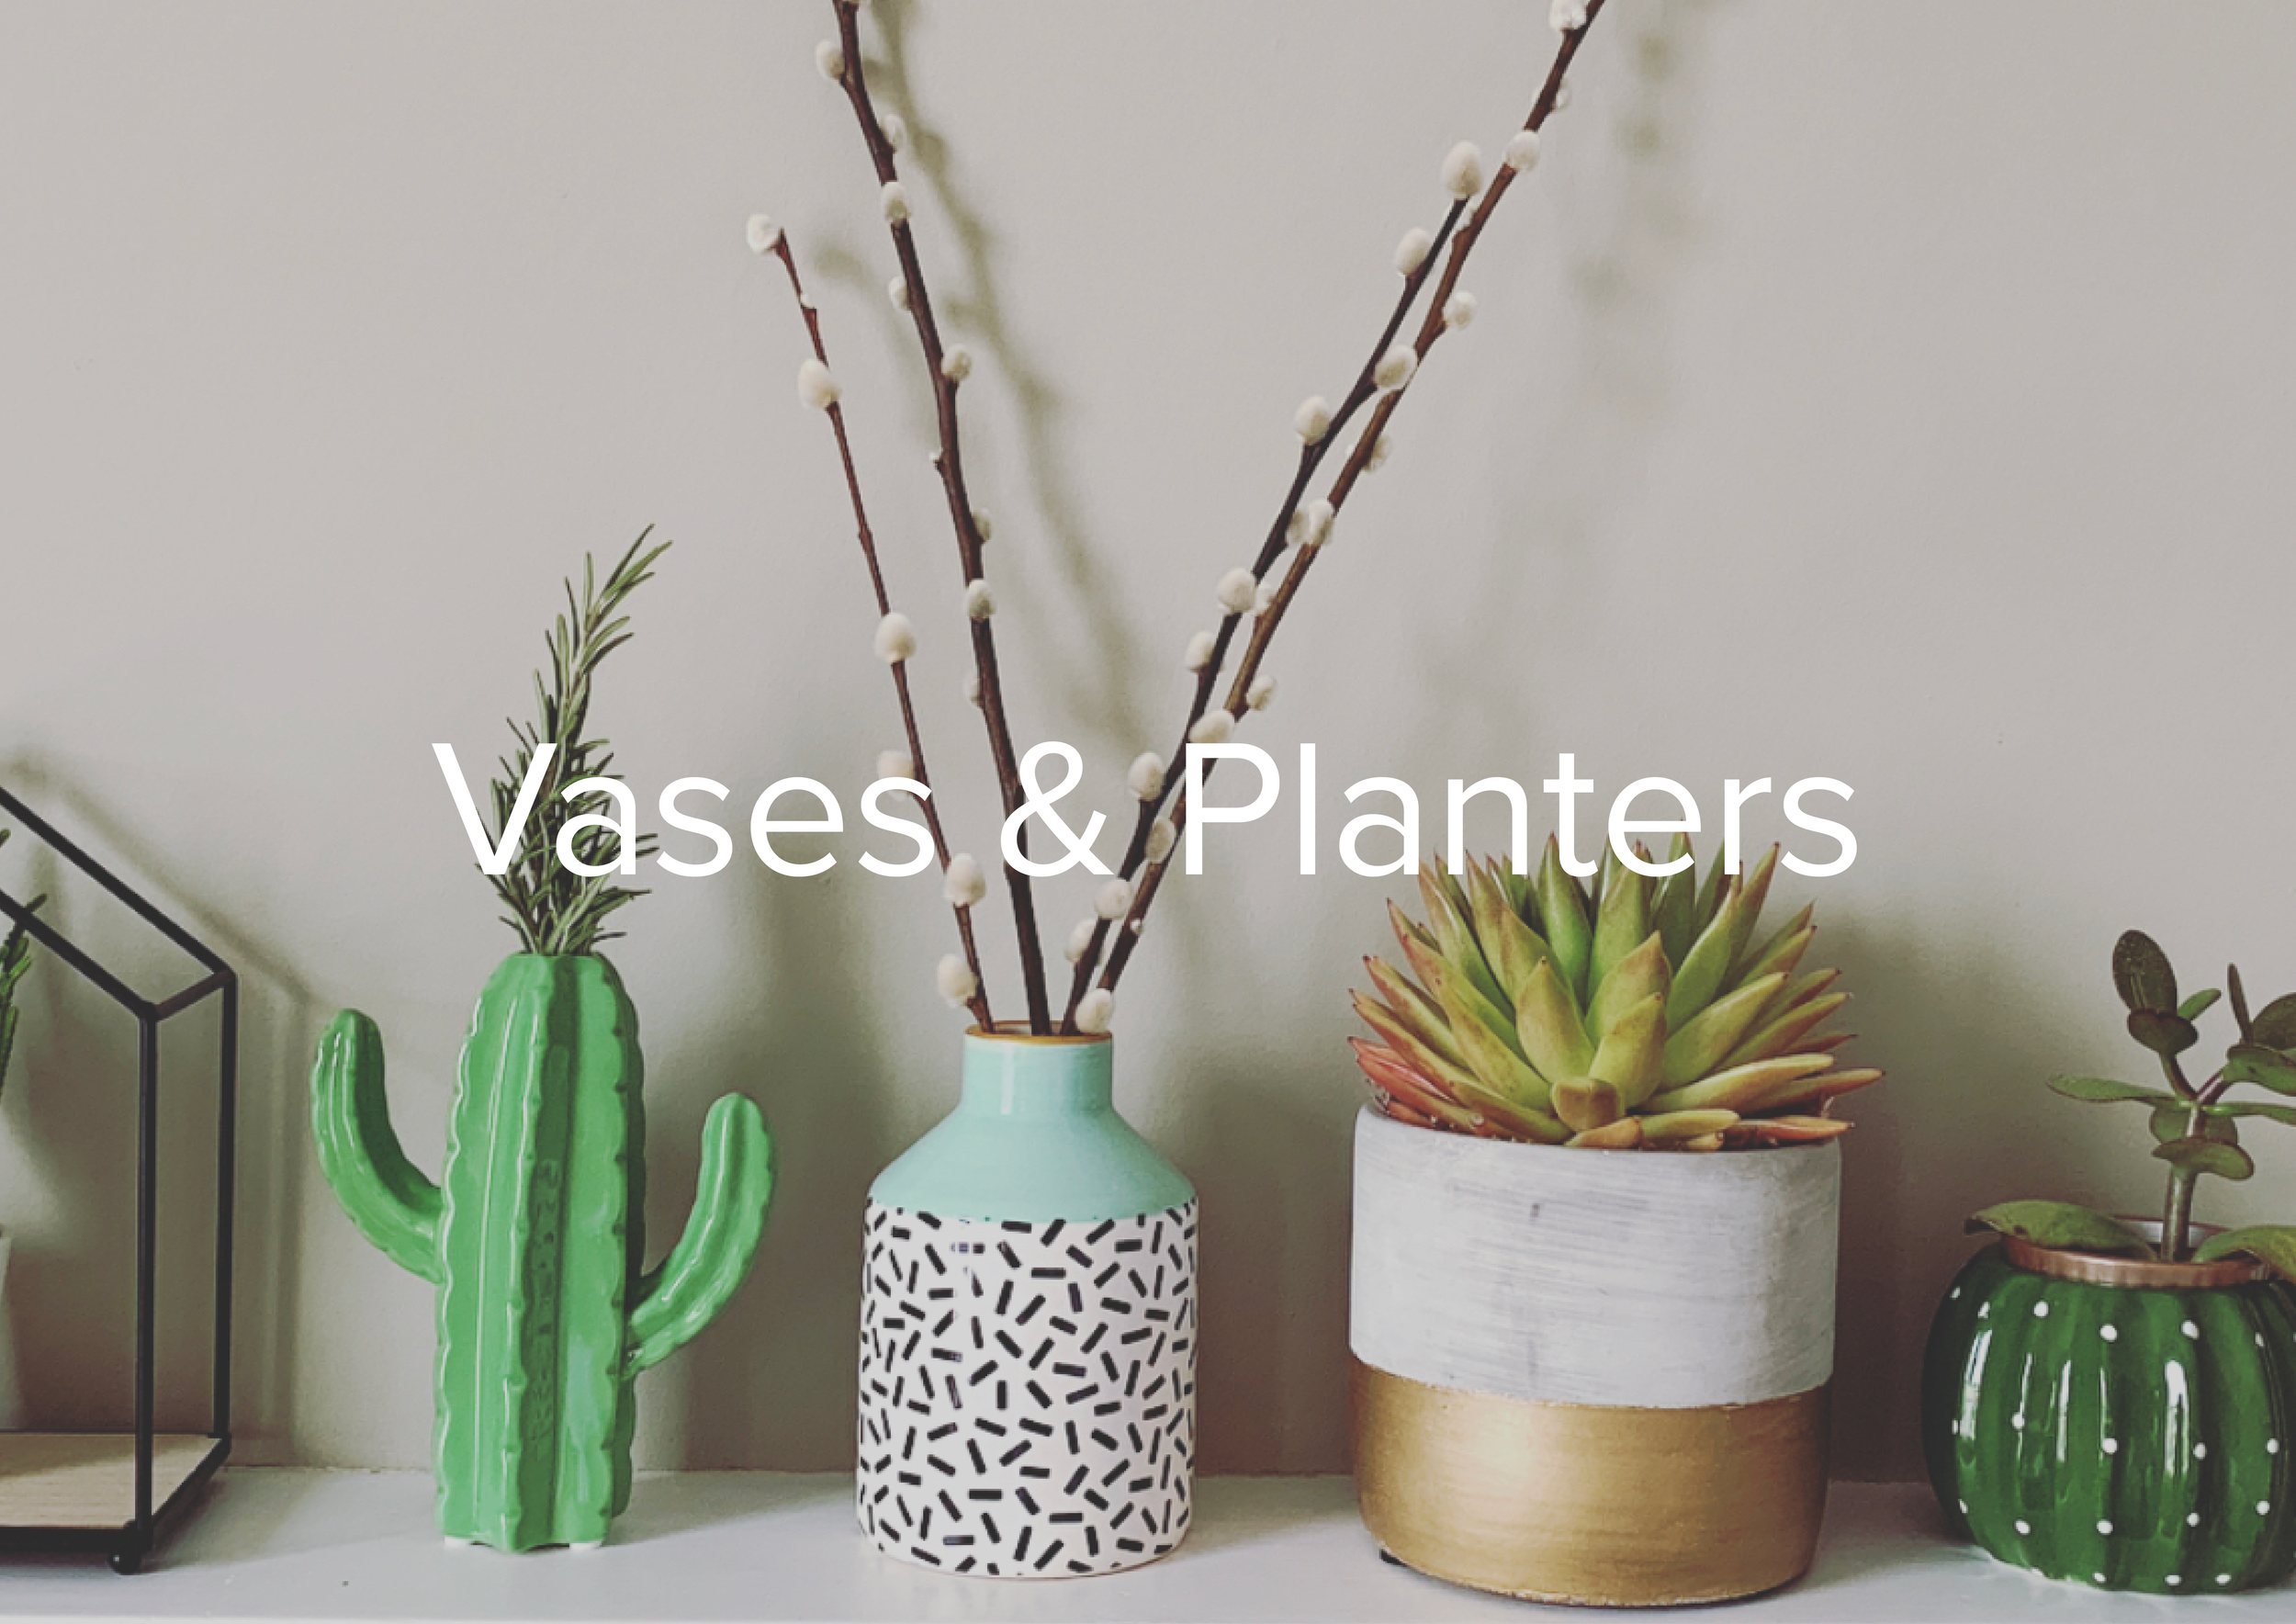 Home at Last Vases and Planters.png